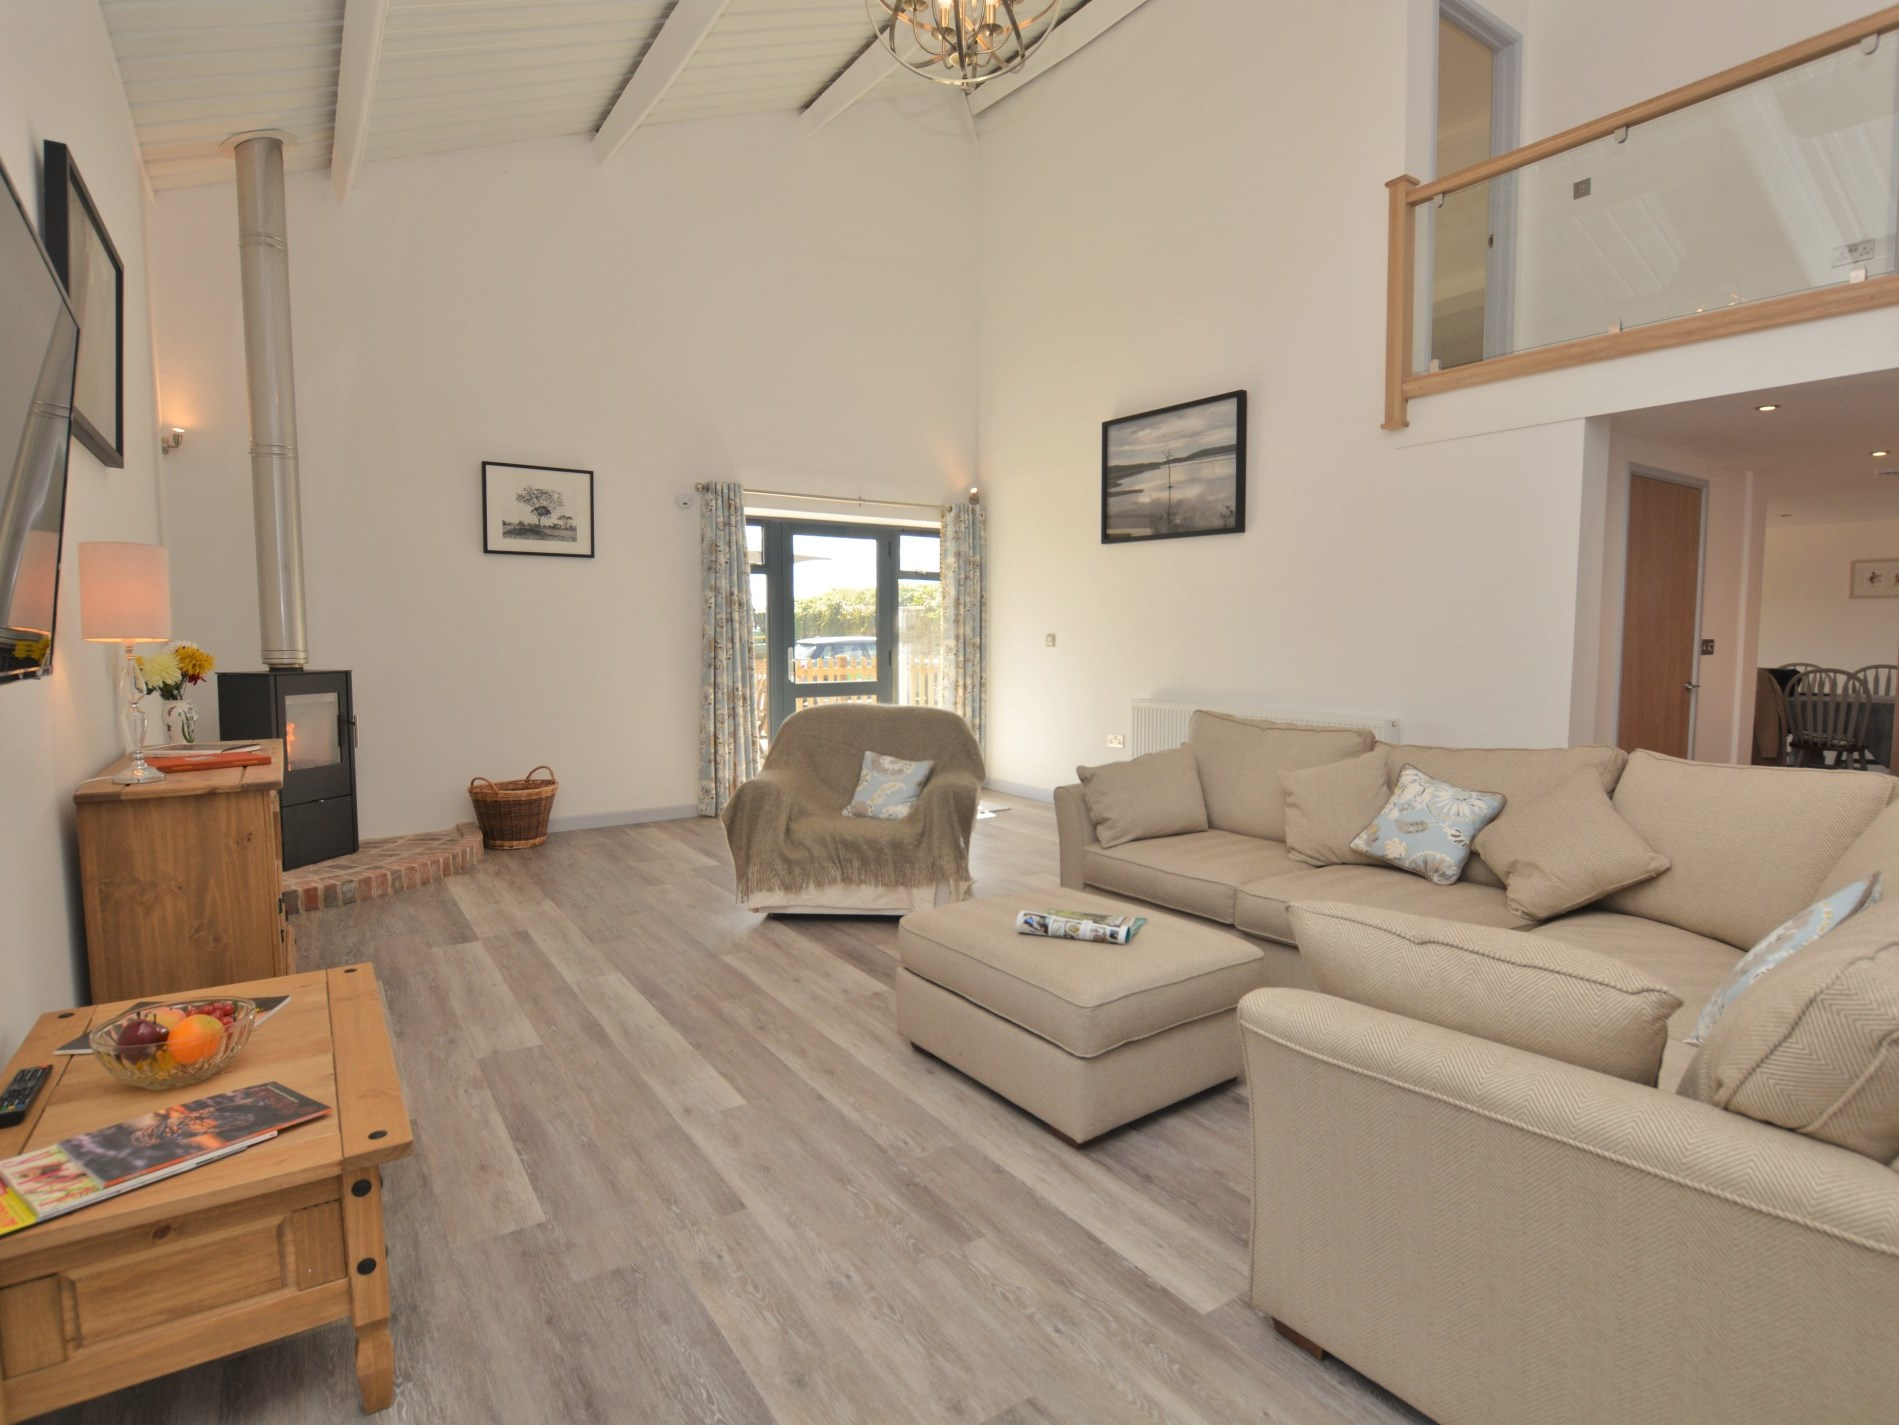 3 Bedroom Cottage in Blandford Forum, Dorset and Somerset